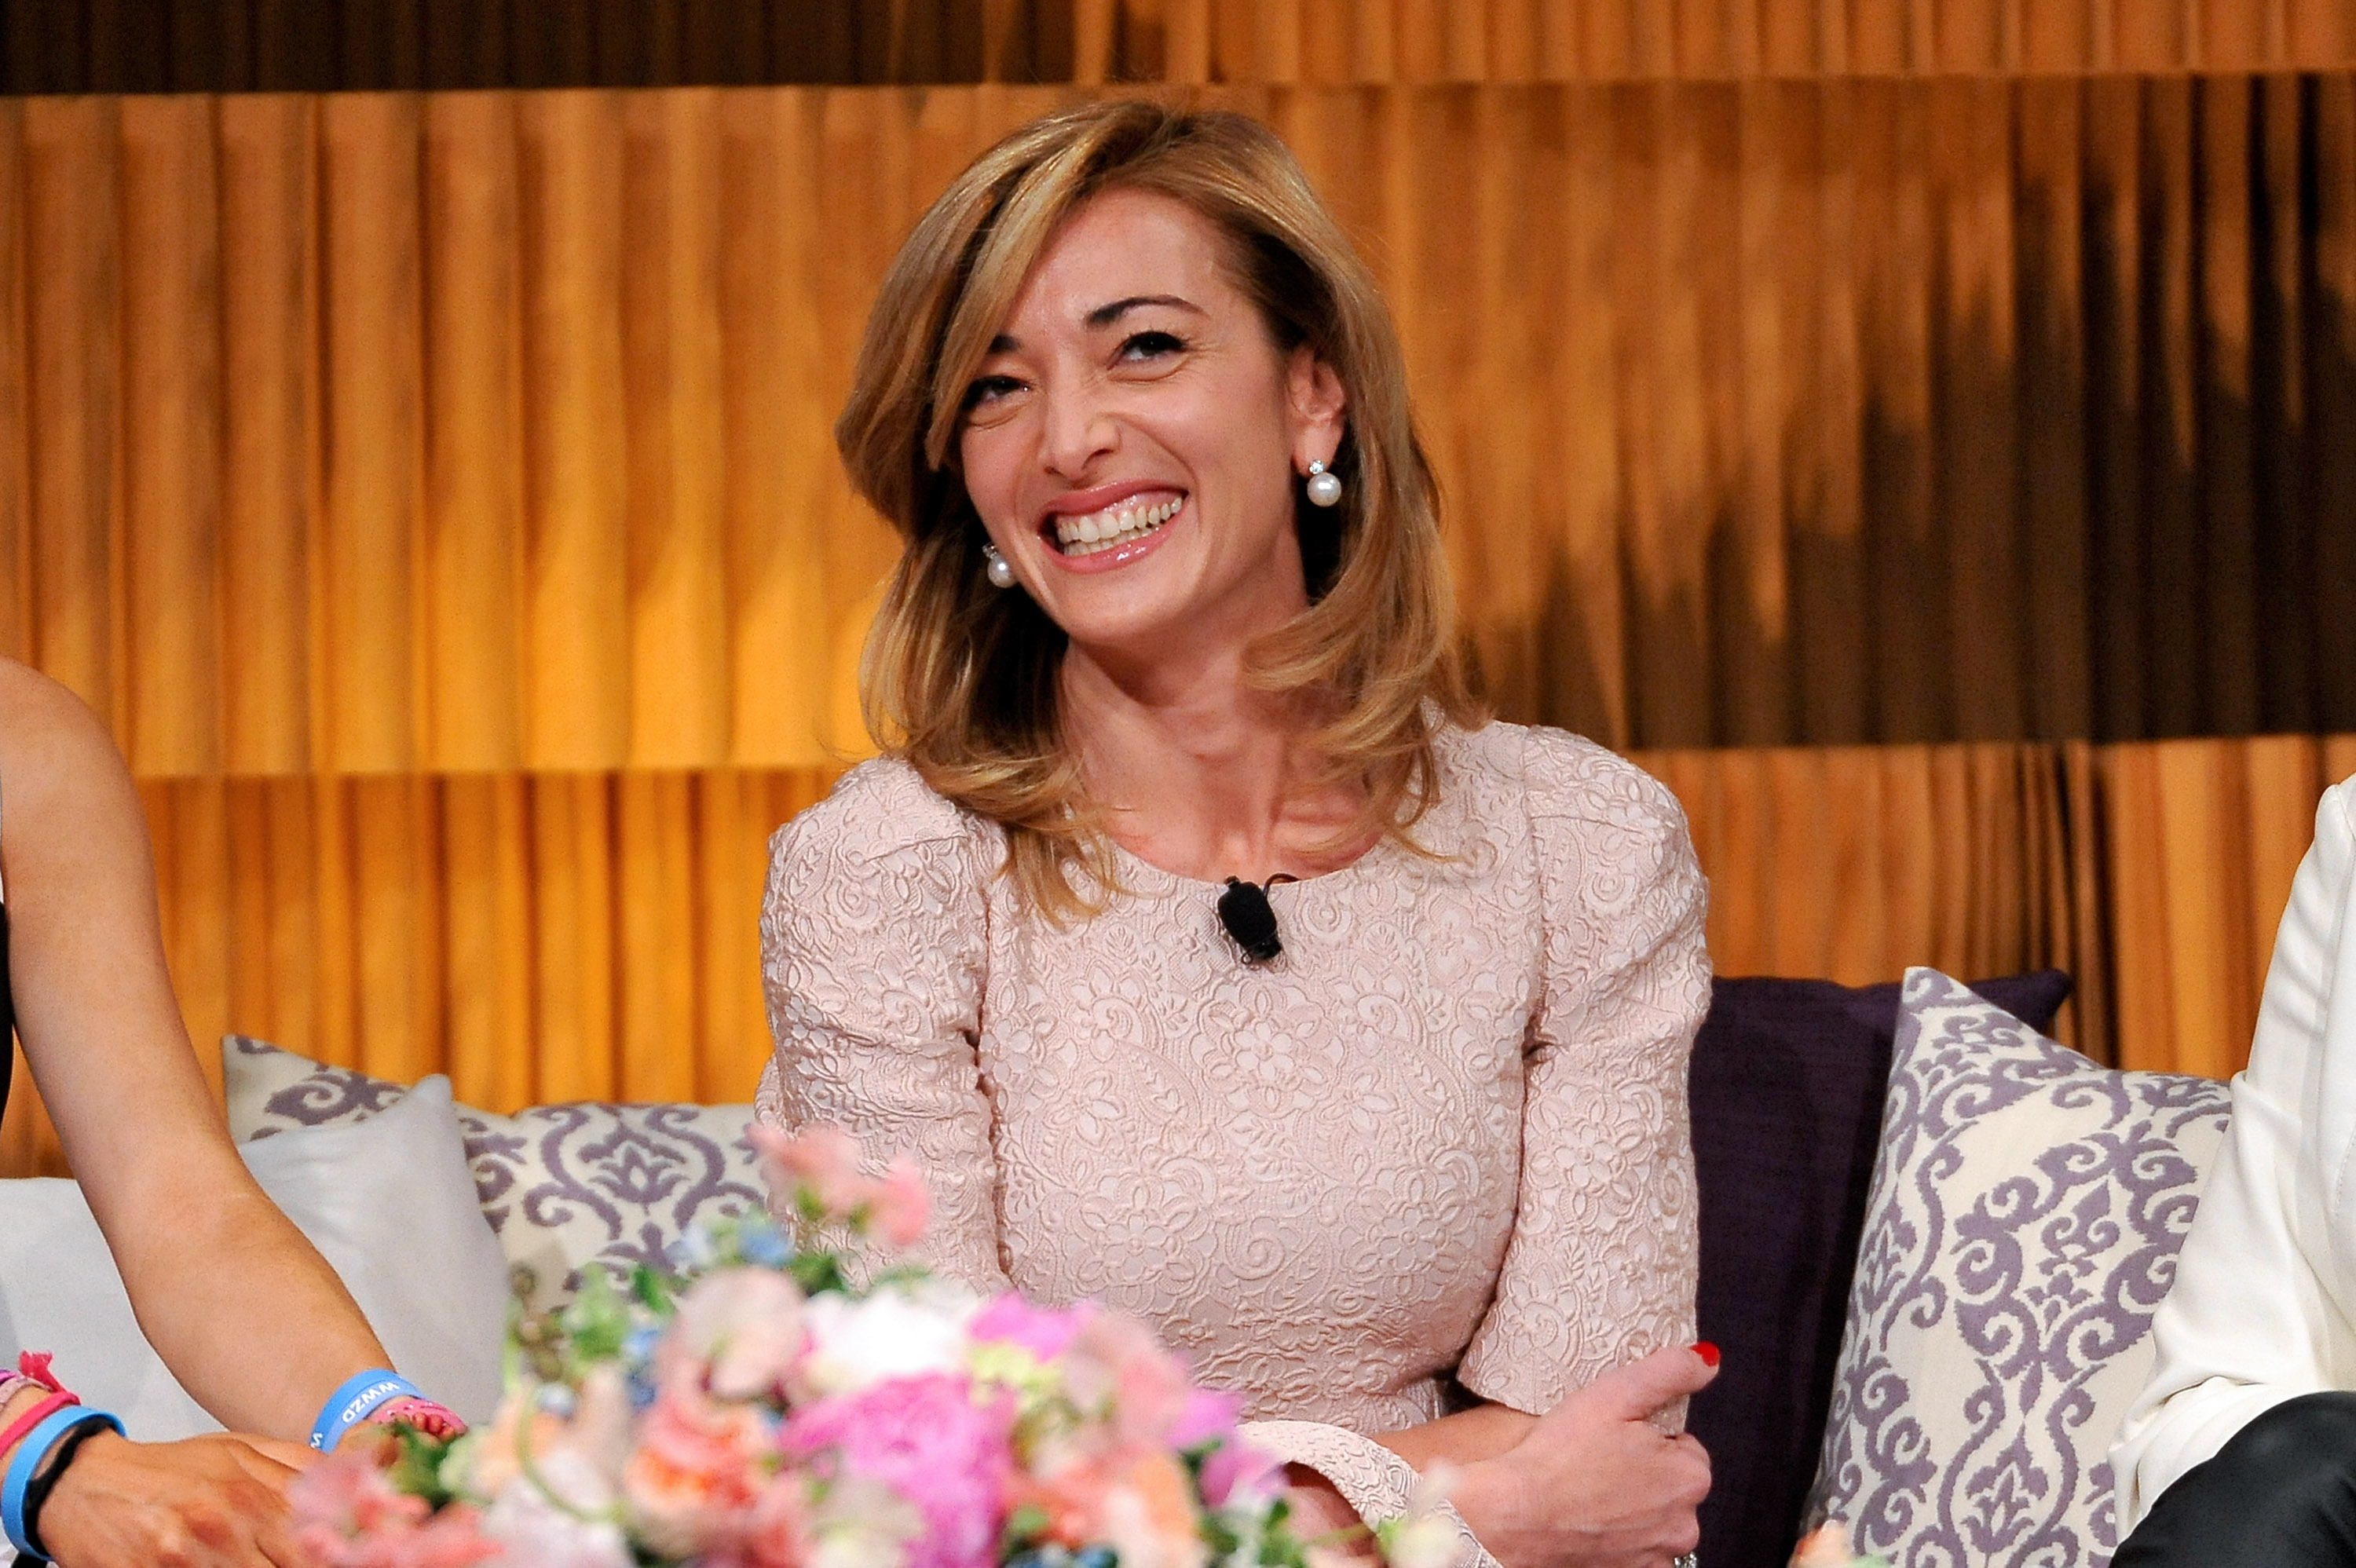 Federica Marchionni, former CEO, Lands' End